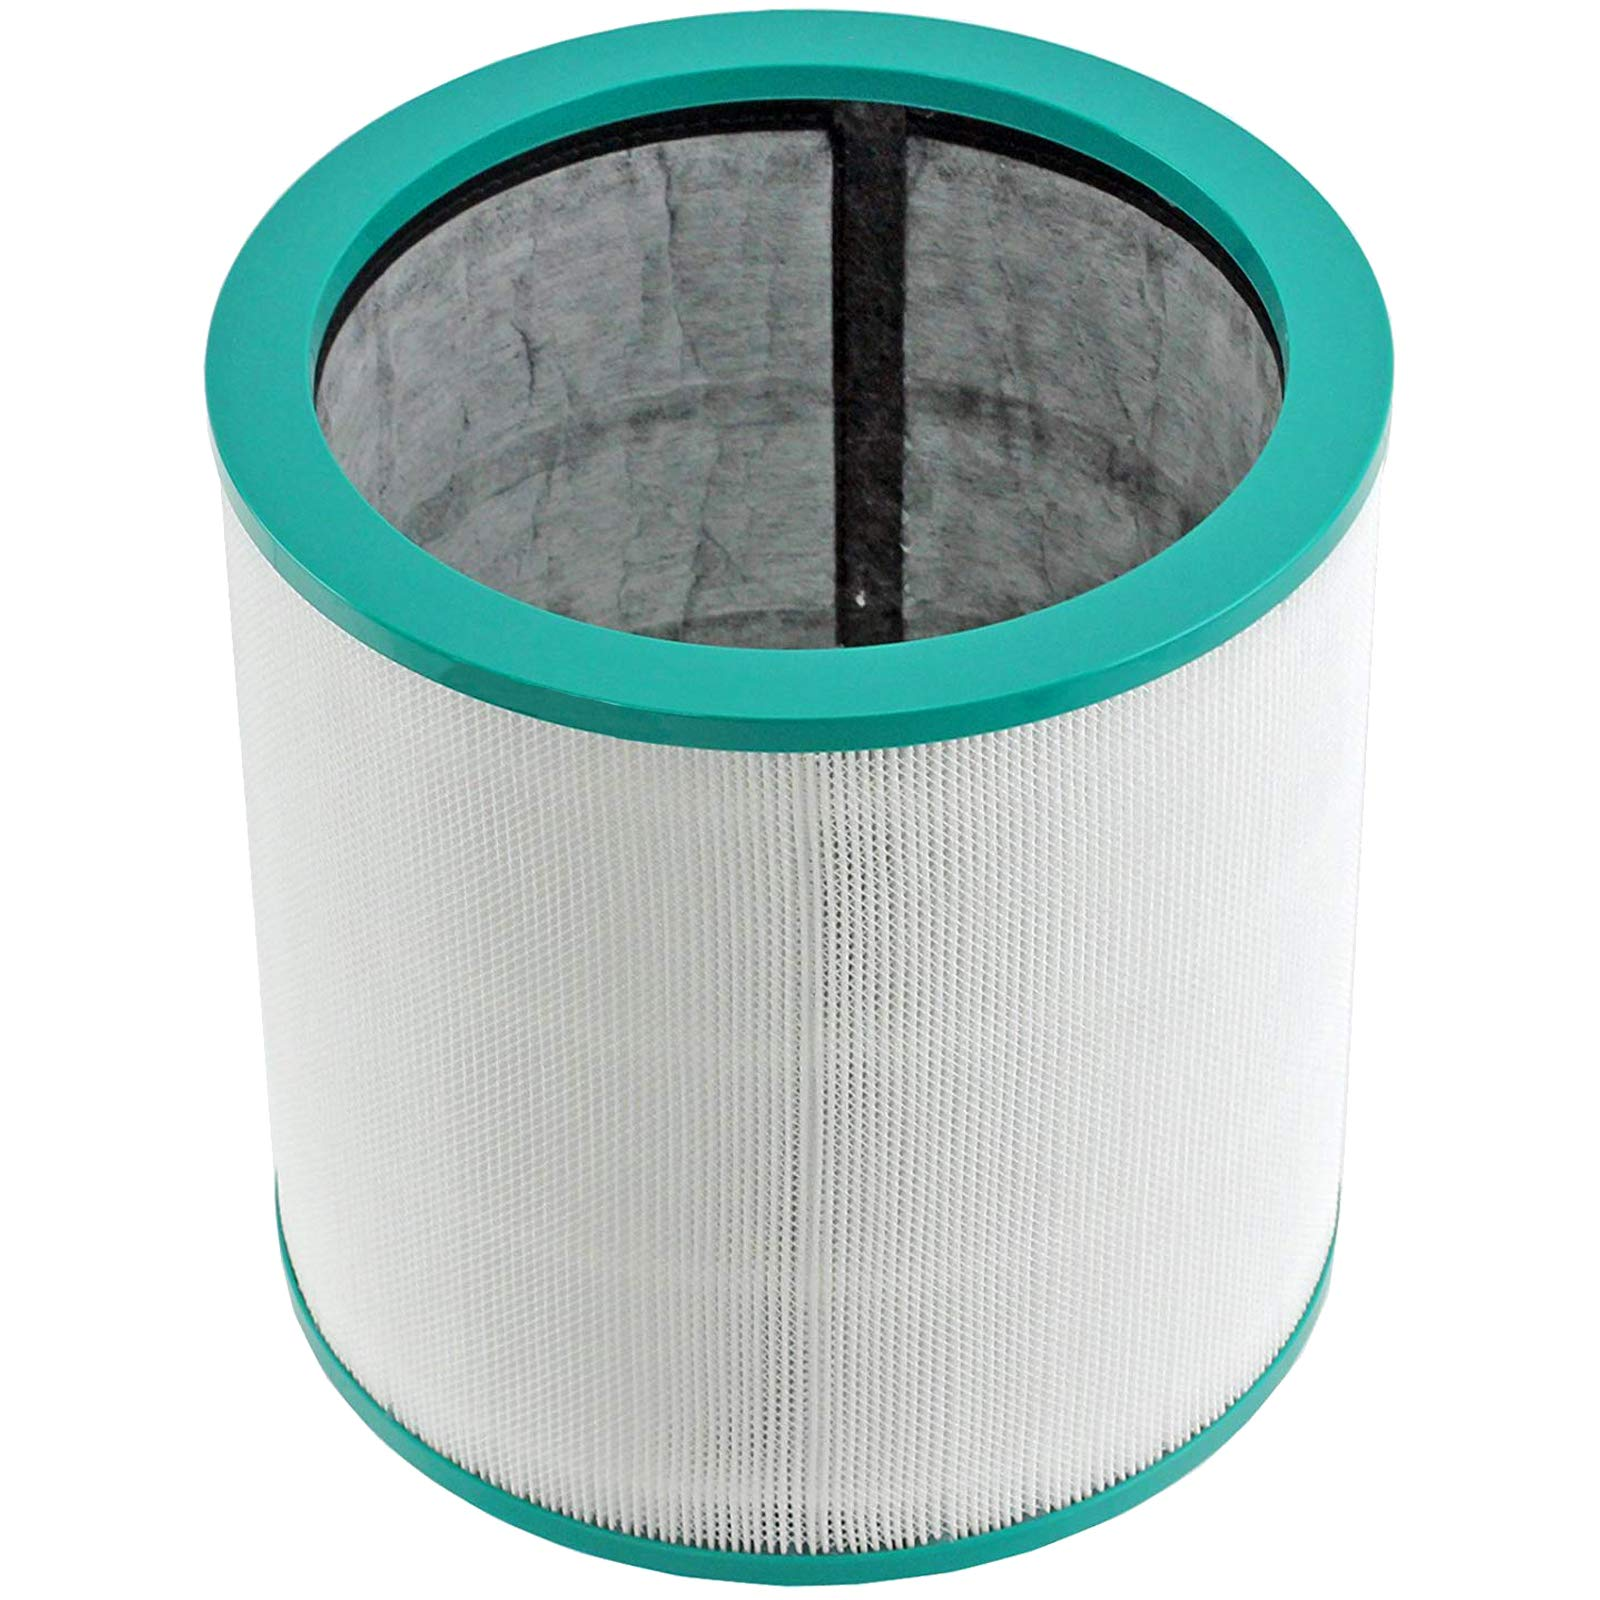 SPARES2GO 360° Glass Hepa Filter Compatible with Dyson Pure Cool Link Tower Air Purifier